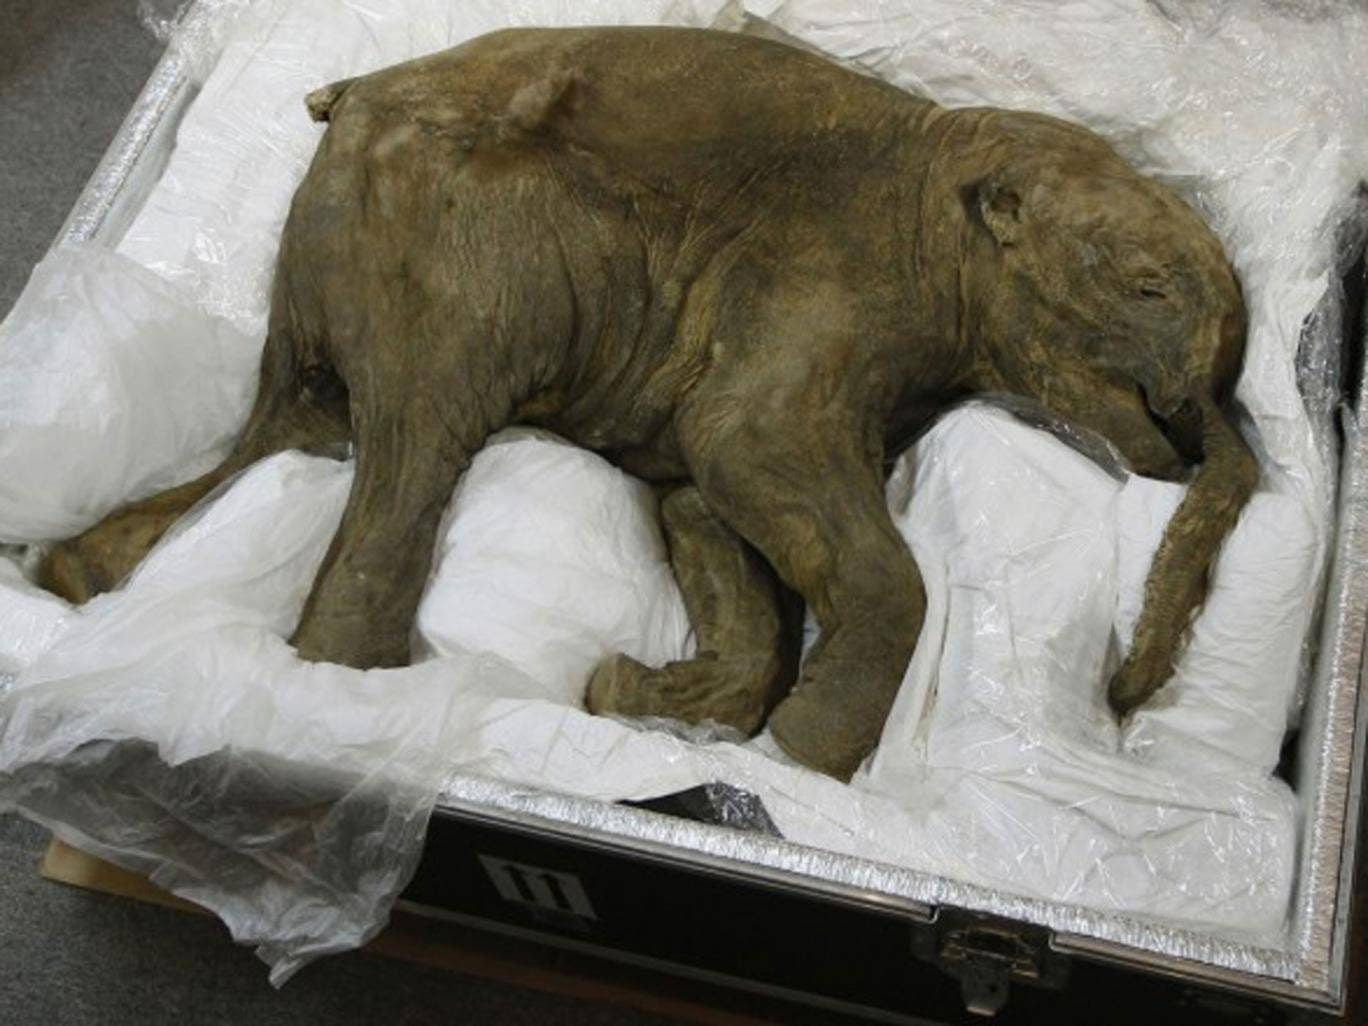 The babymammoth, found in Siberia by a reindeer herder in 2007, is little larger than a dog, and has been nicknamed Lyuba.